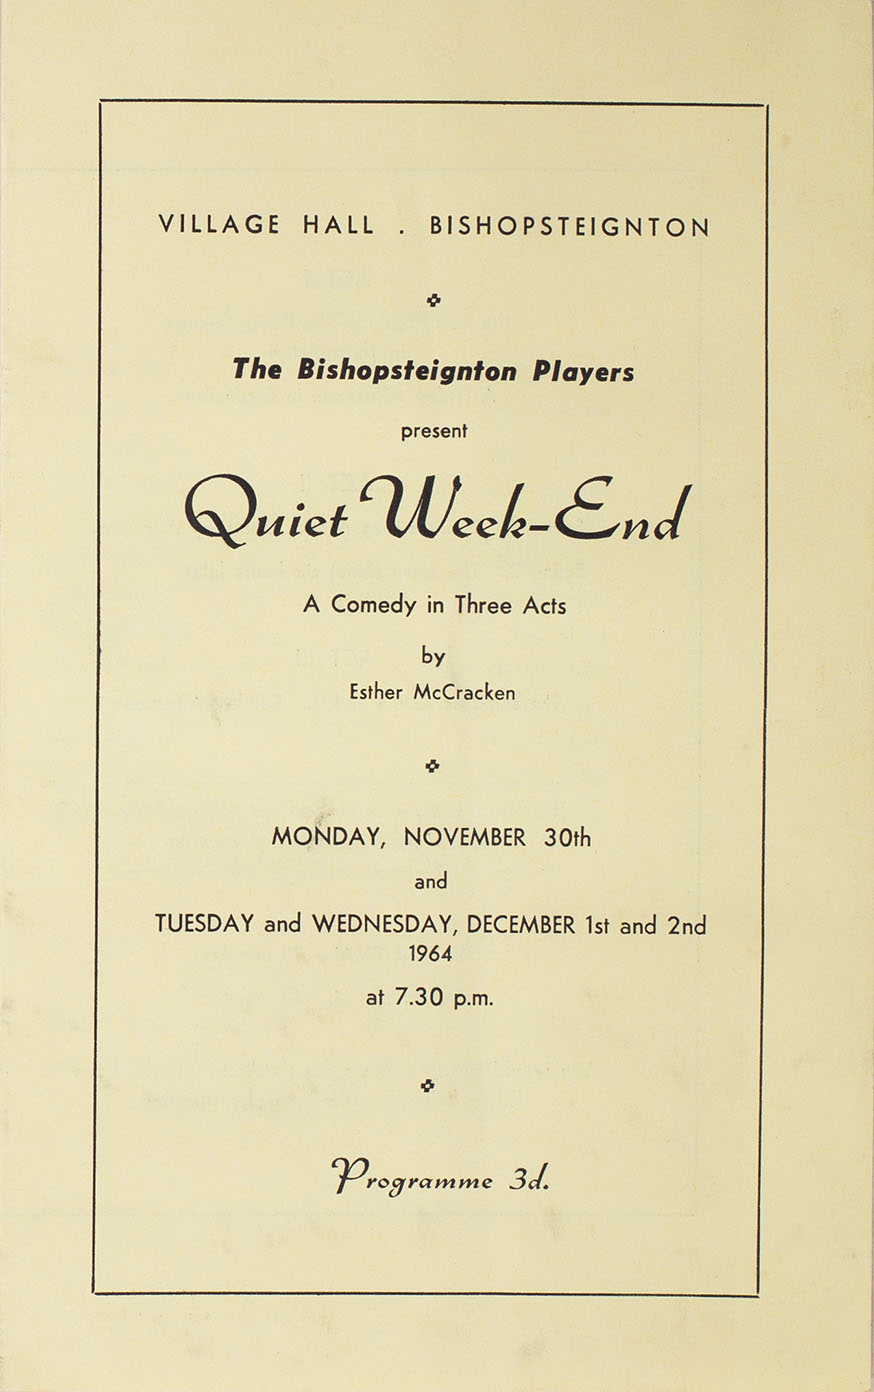 Leaflet to advertise the programme for the play 'Quiet Week-End' presented by Bishopsteignton Players front